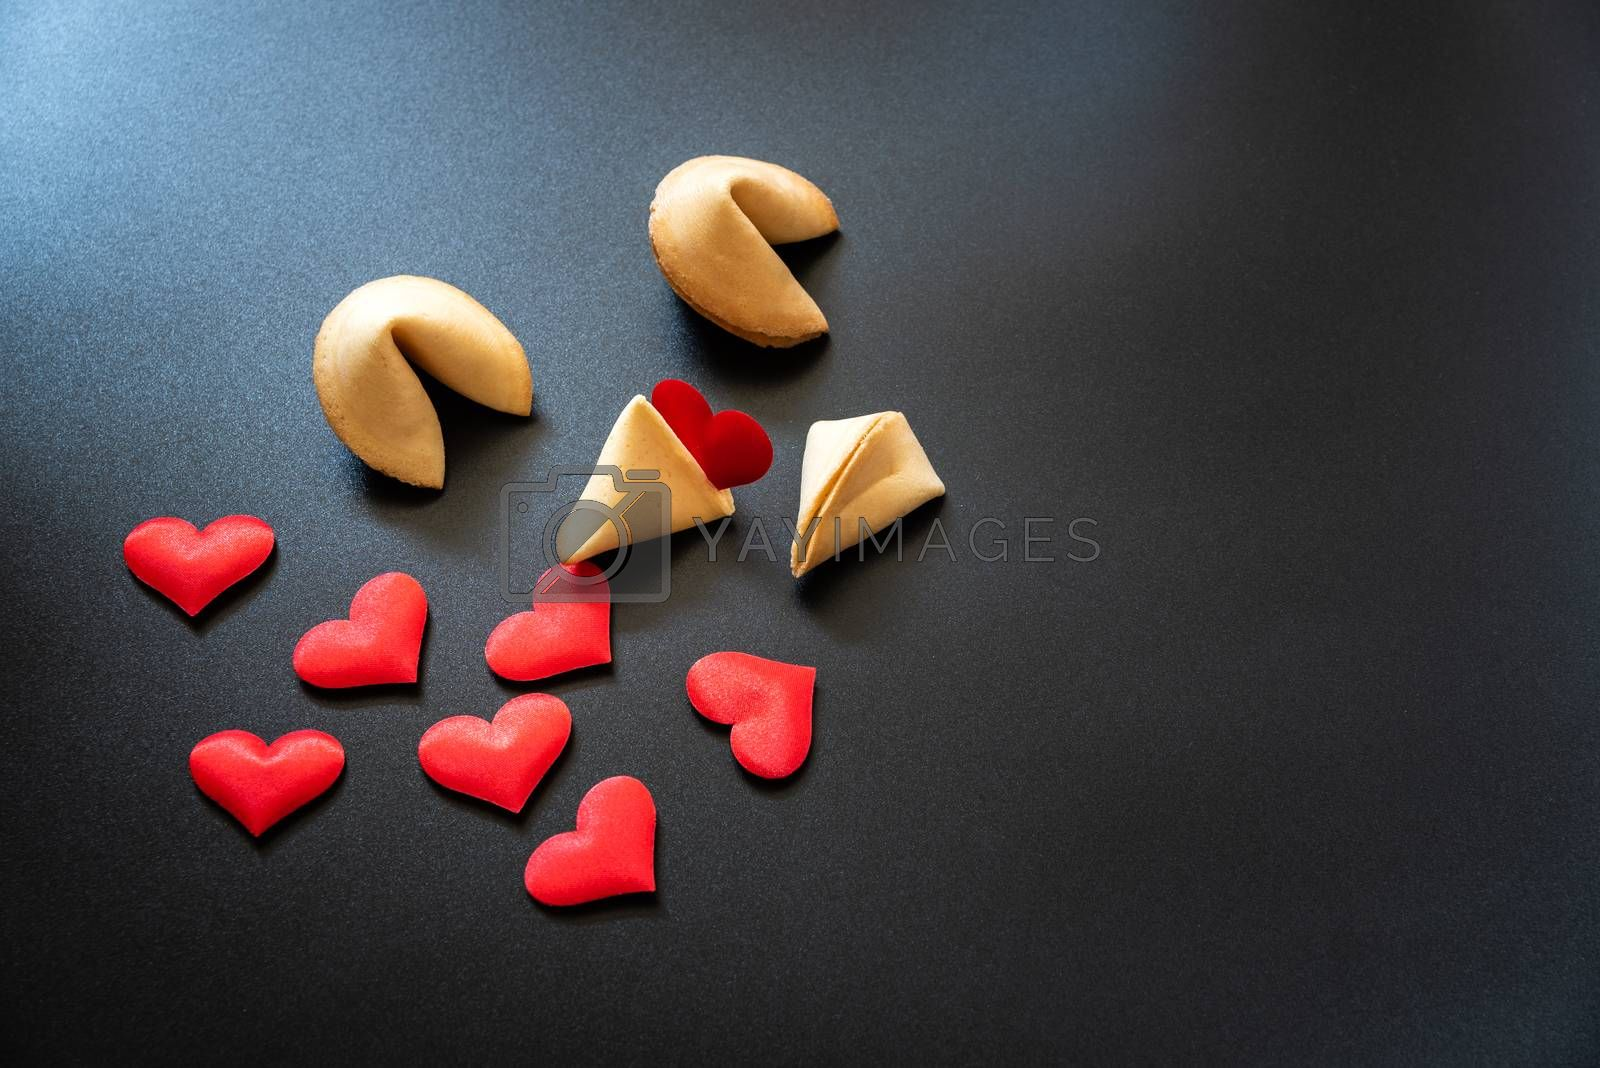 Looking for love in lucky cookies, concept of single people needing dating to find love.